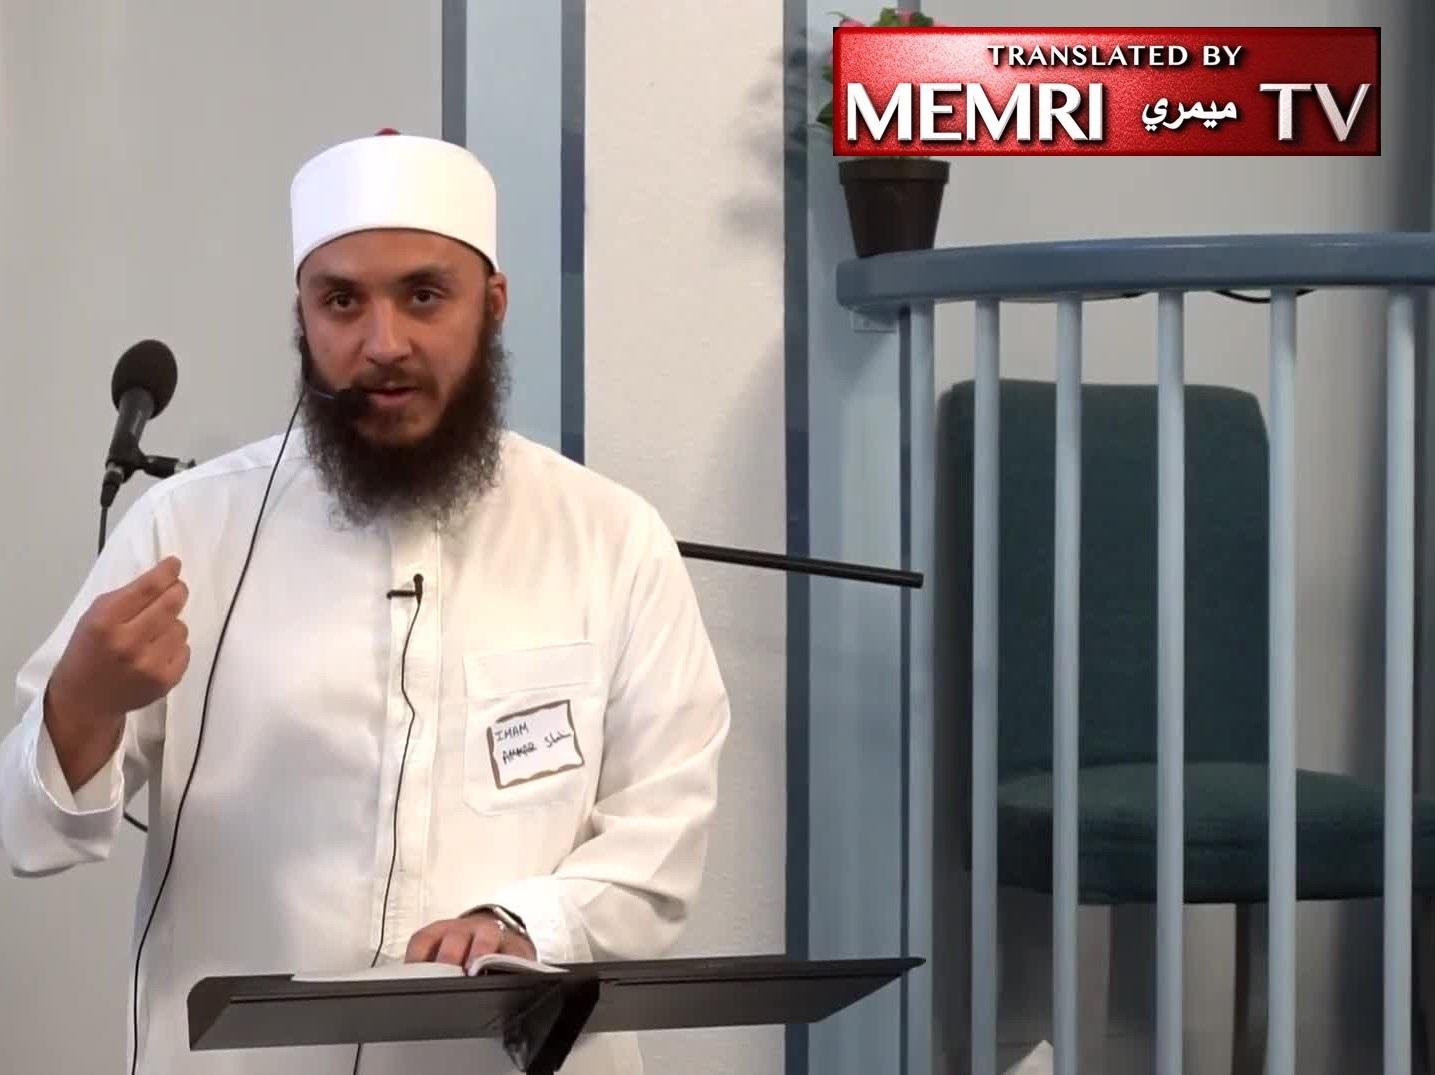 Davis, California Imam Ammar Shahin at Interfaith Event: I Have Never Called for Genocide of any Group or Used Antisemitic Words